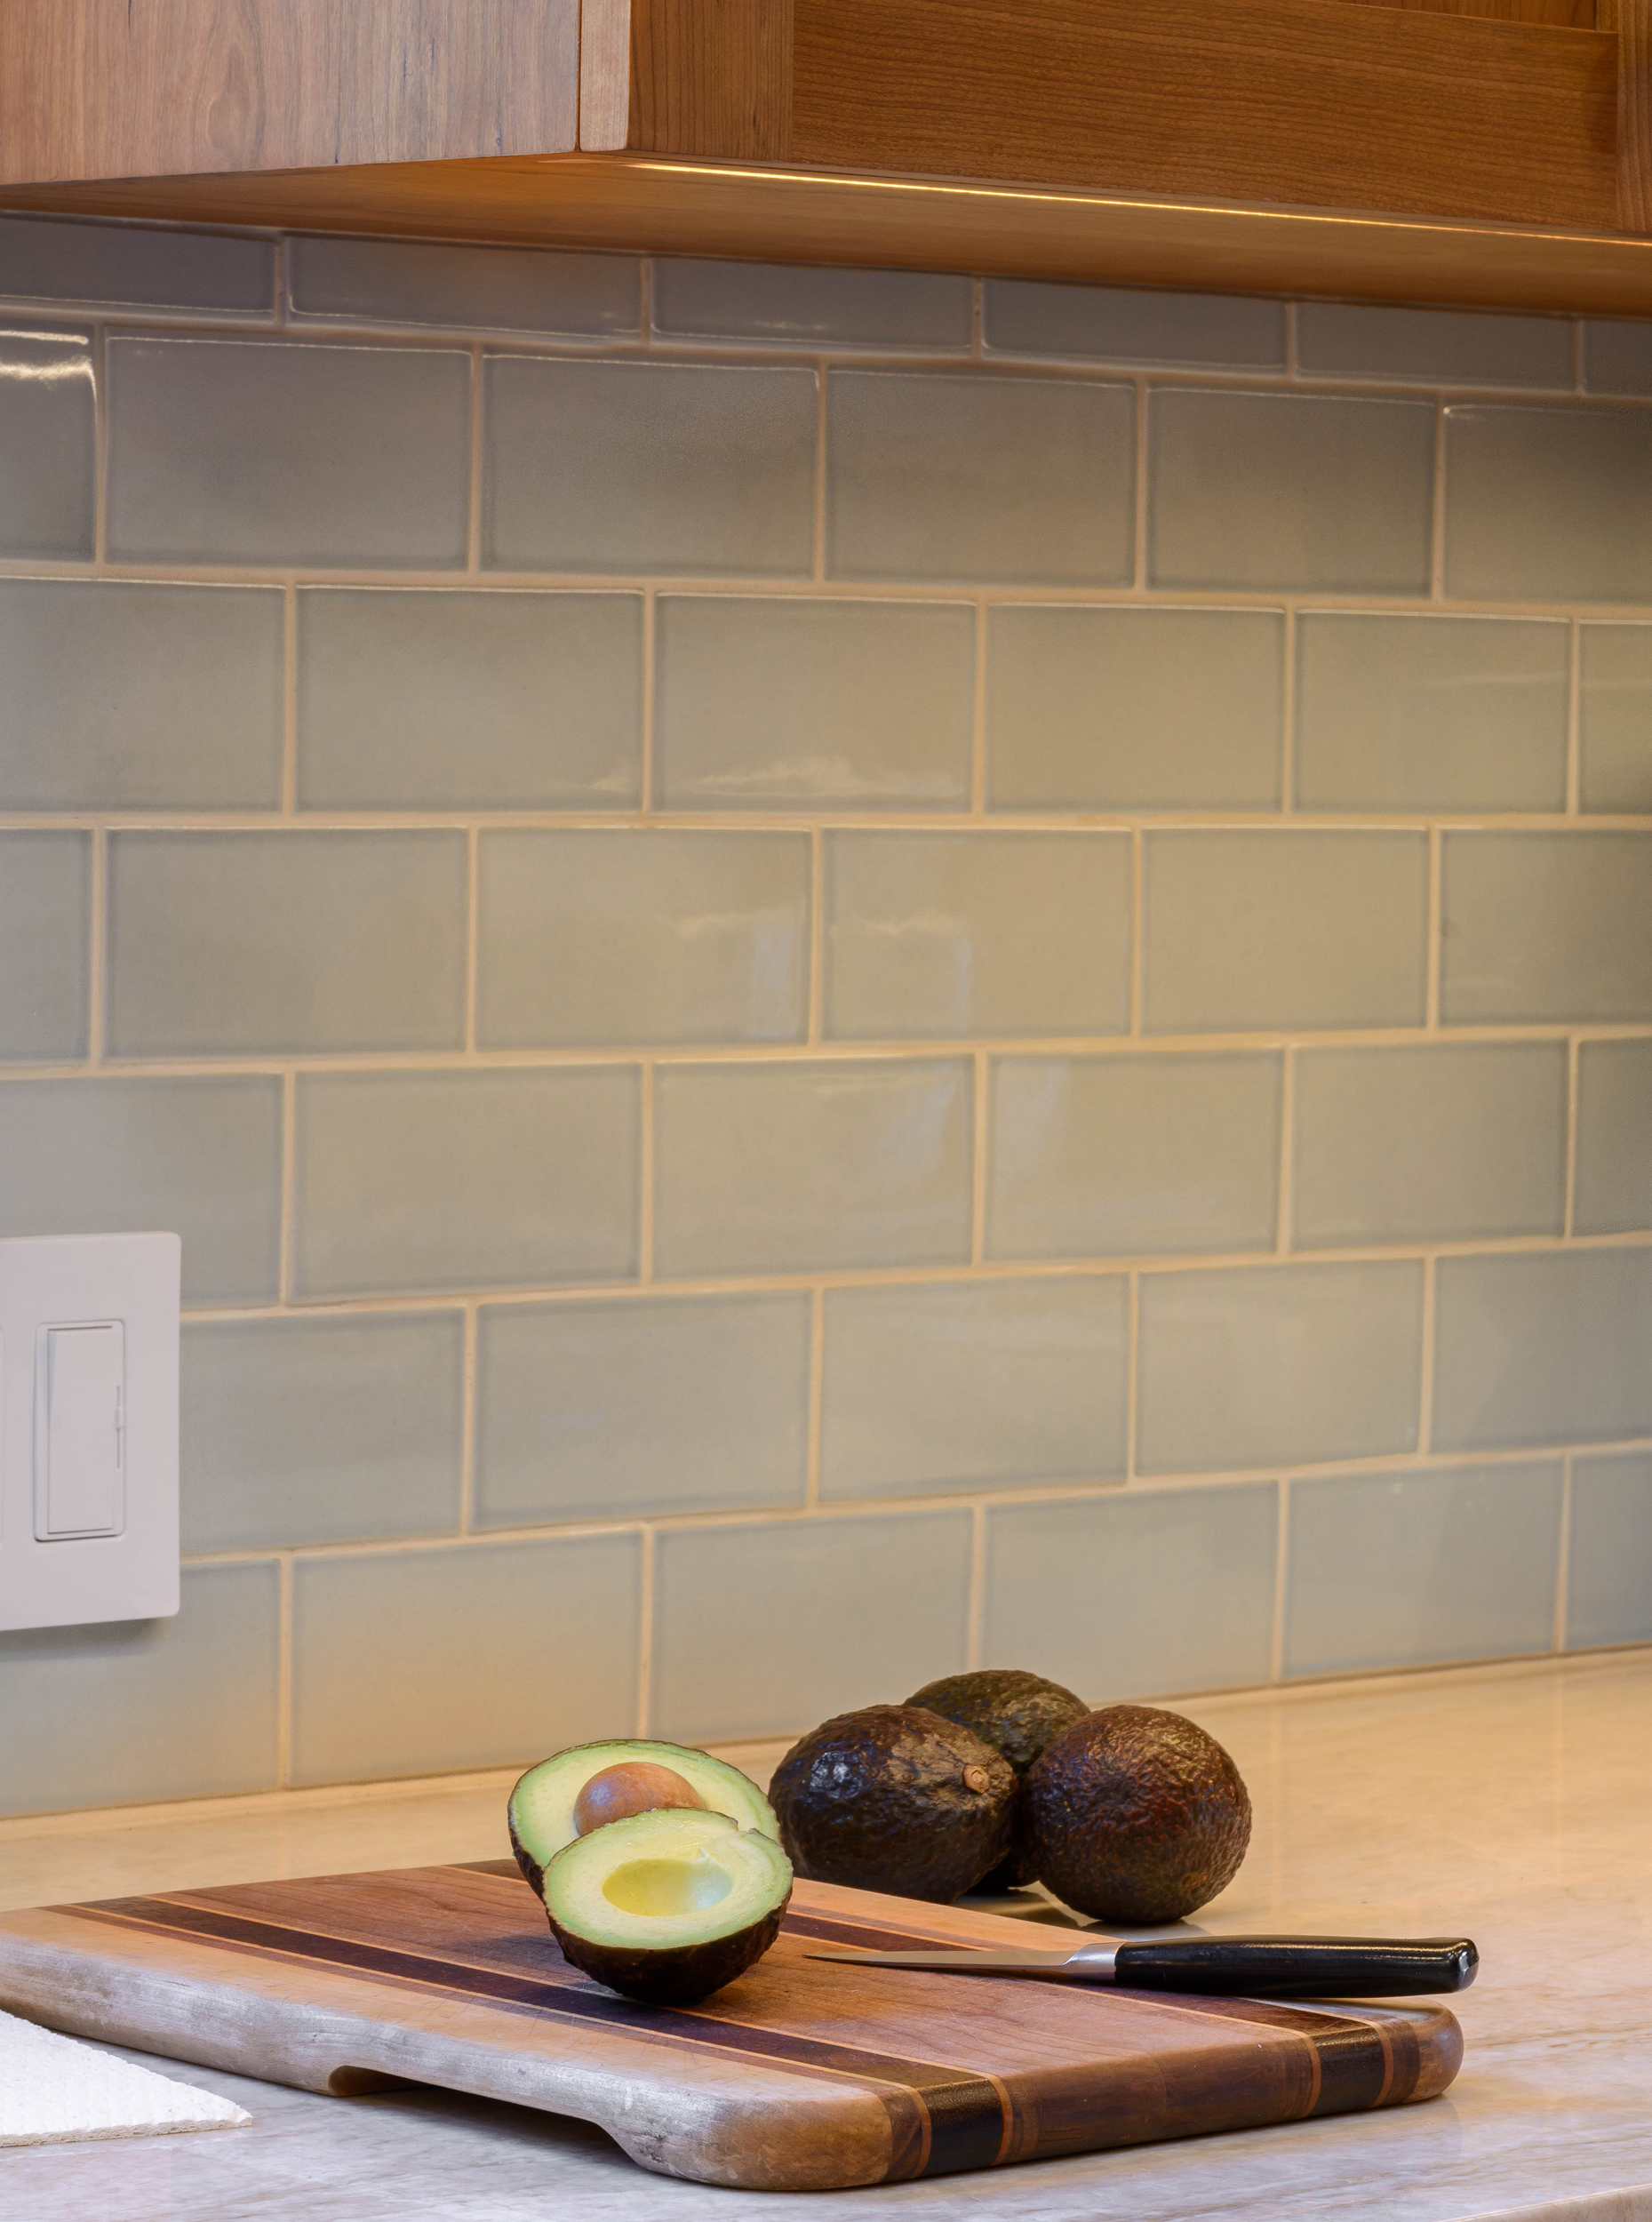 Kitchen stone counter with warm soft blue tile backsplash